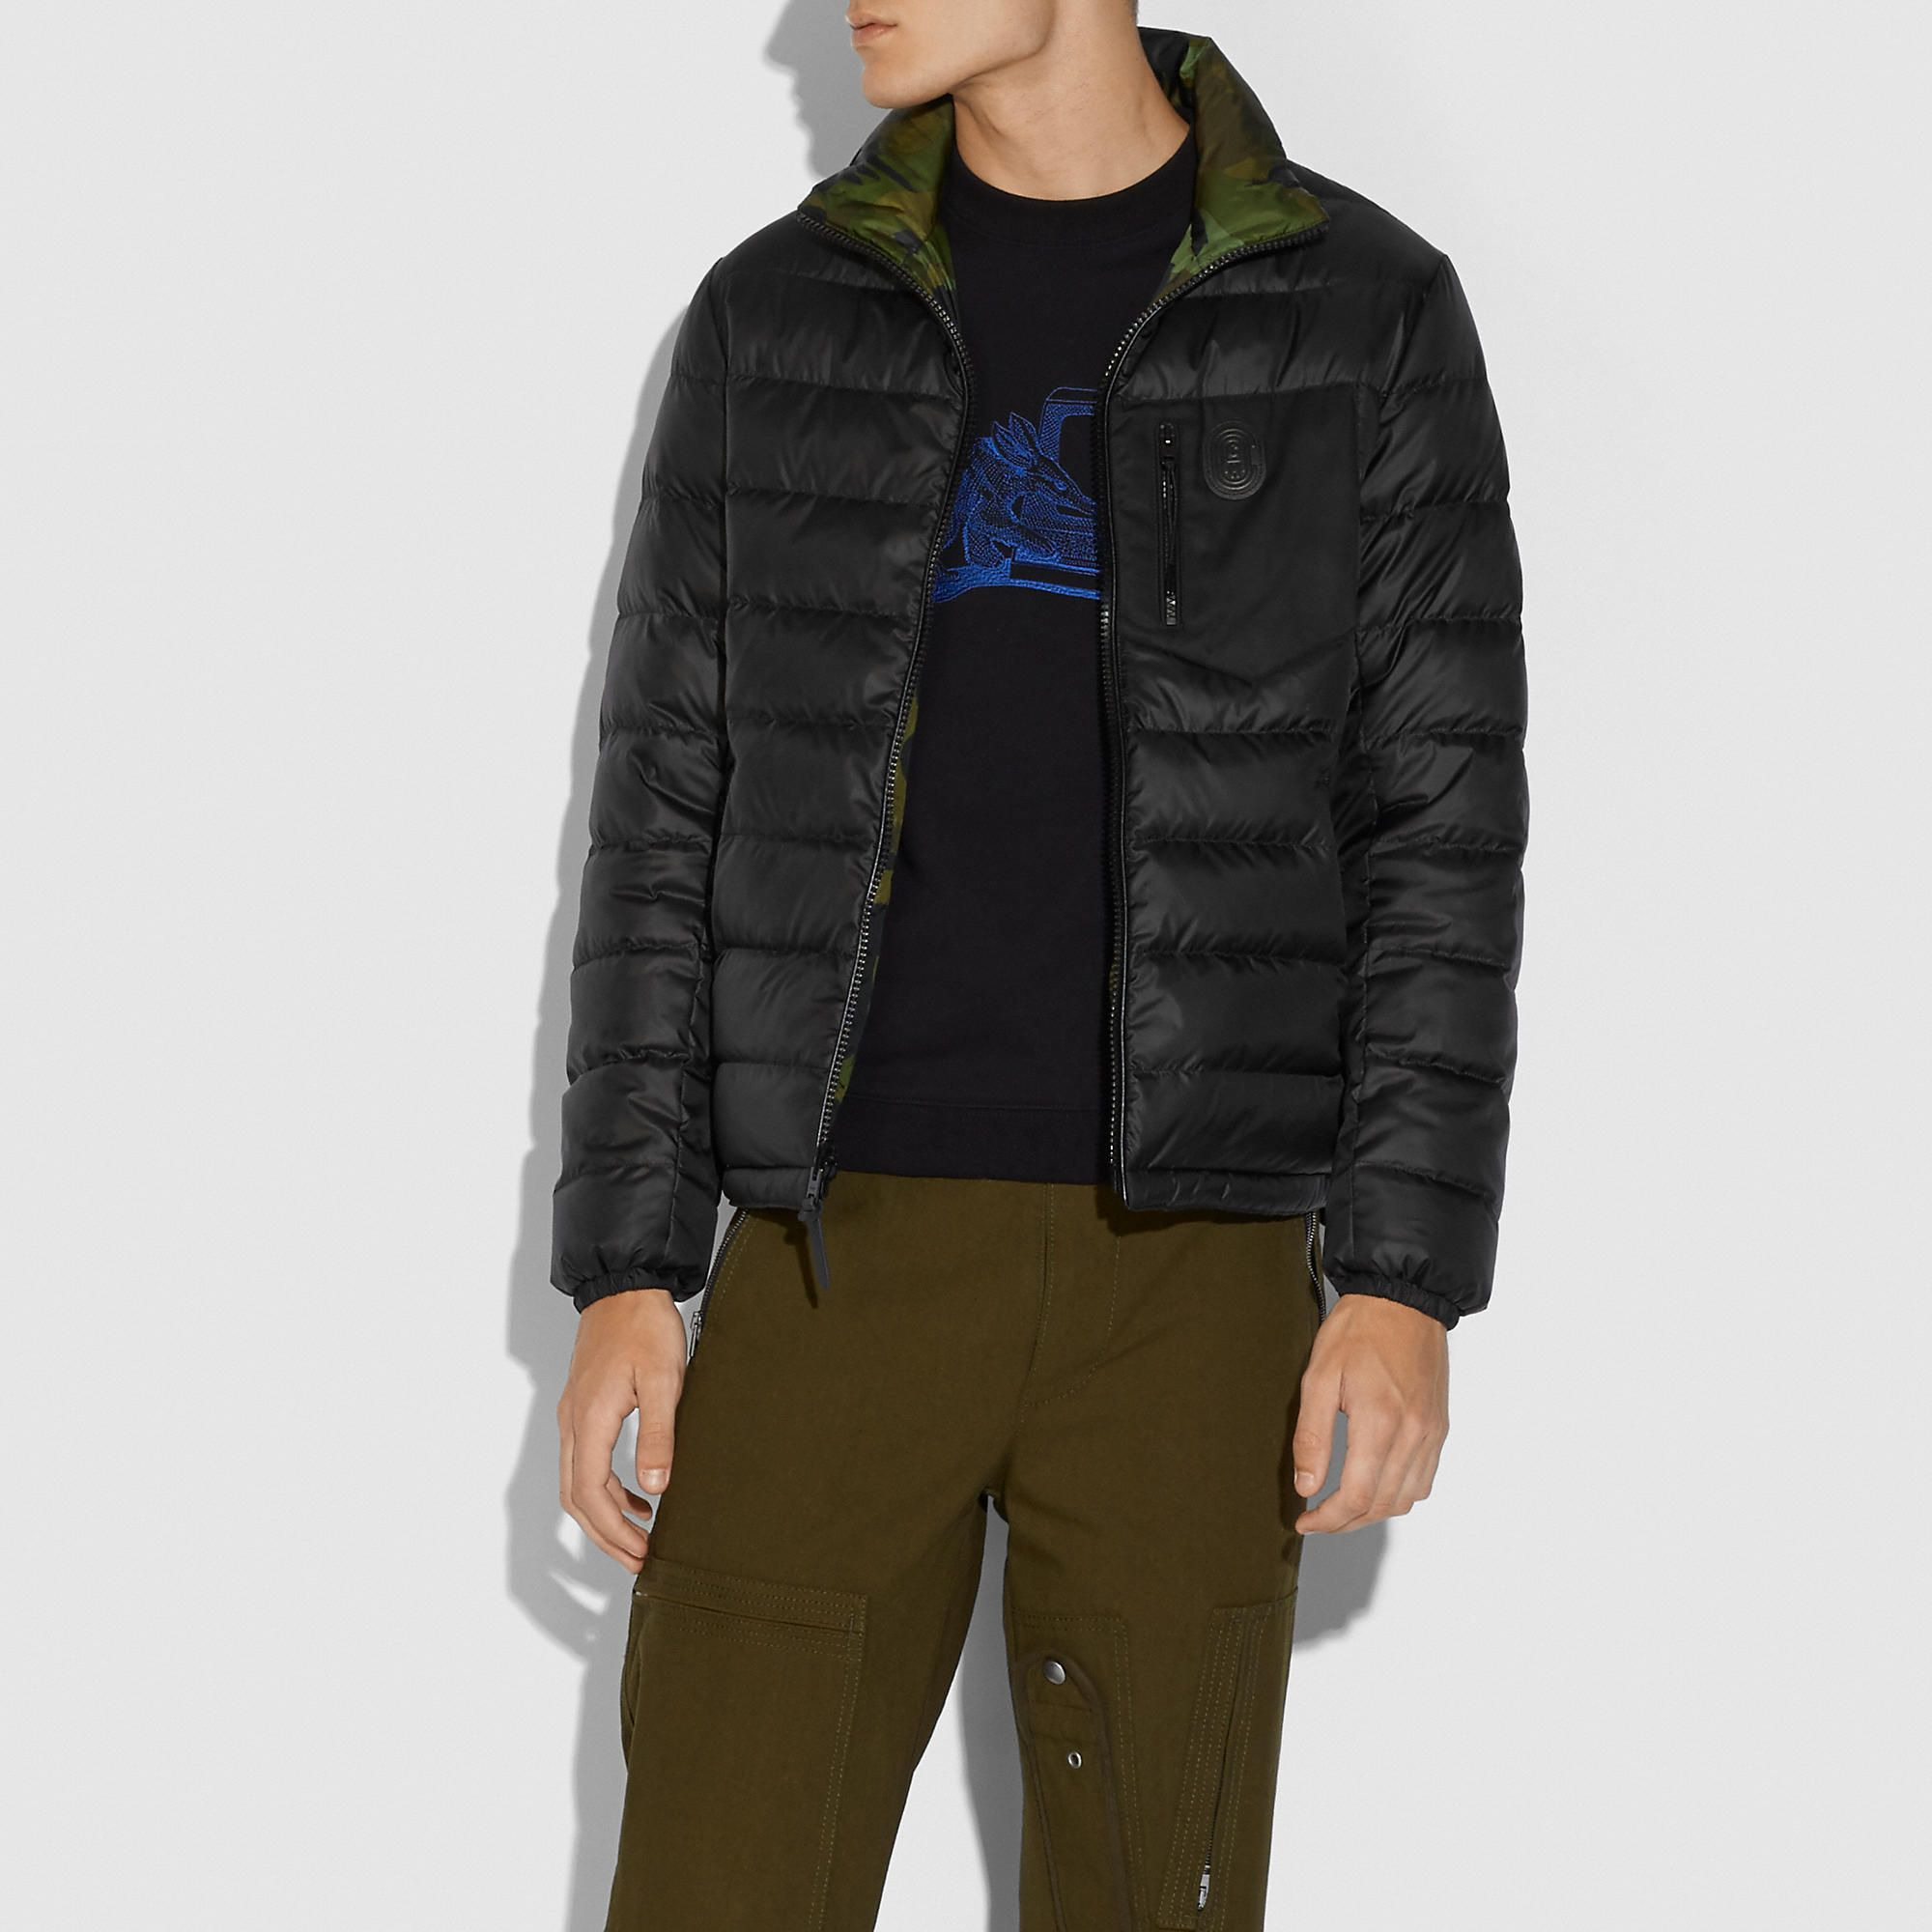 Coach Official Site Designer Handbags Wallets Clothing Menswear Shoes More In 2021 Jackets Puffer Jackets Menswear [ 2000 x 2000 Pixel ]